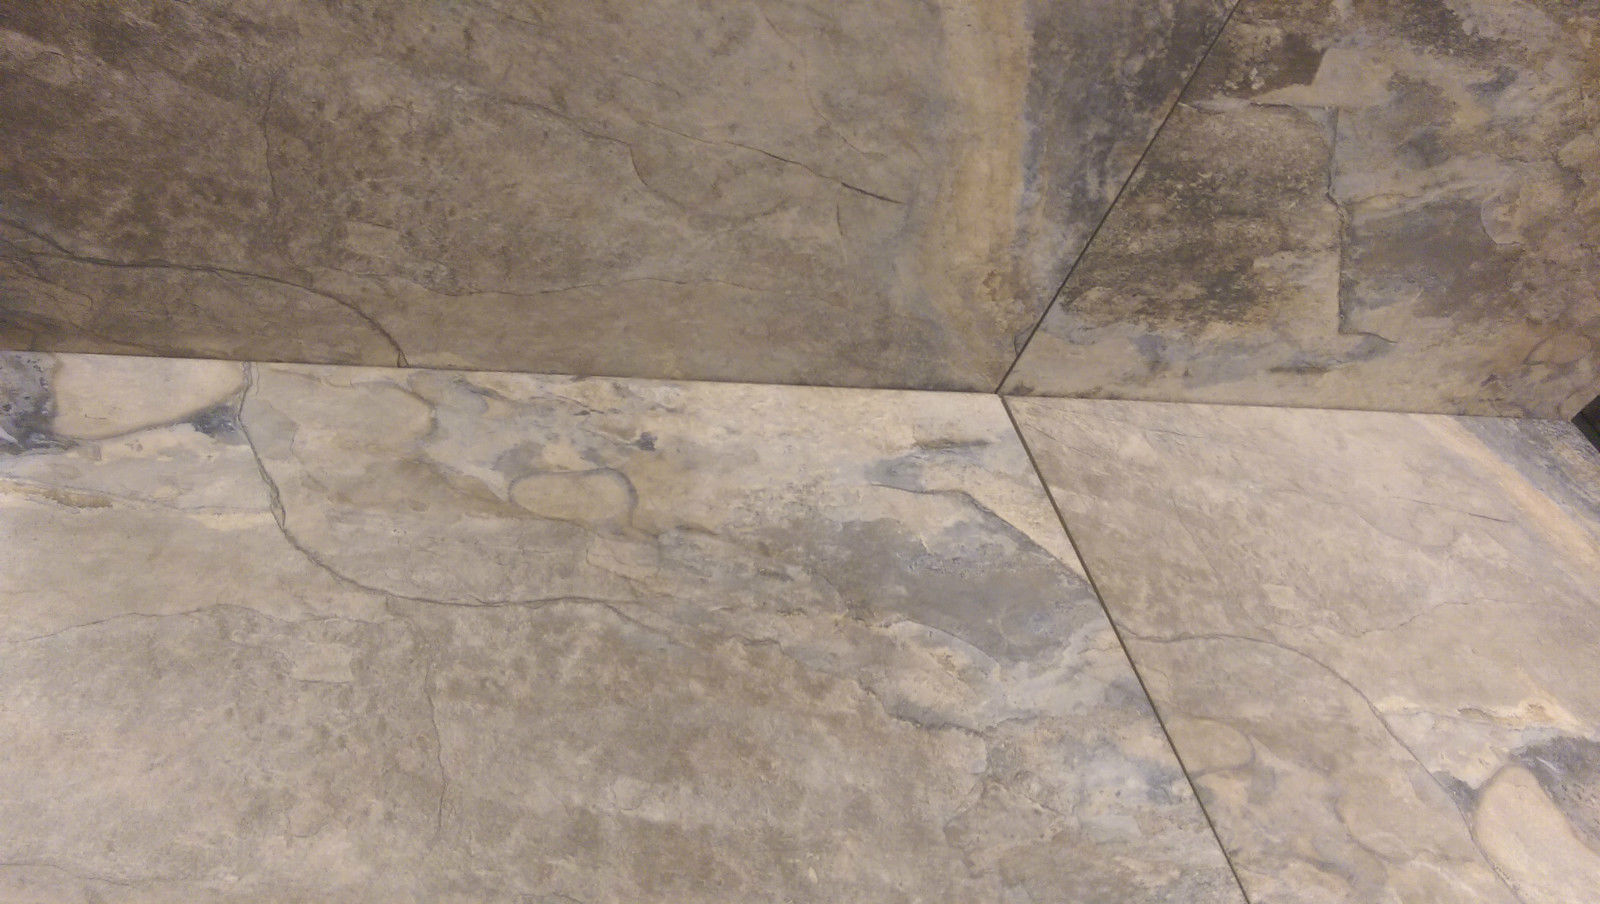 Pennsylvania Slate Effect Porcelain Floor Tile Deal 60 X 40 Inc Adhesive Grout